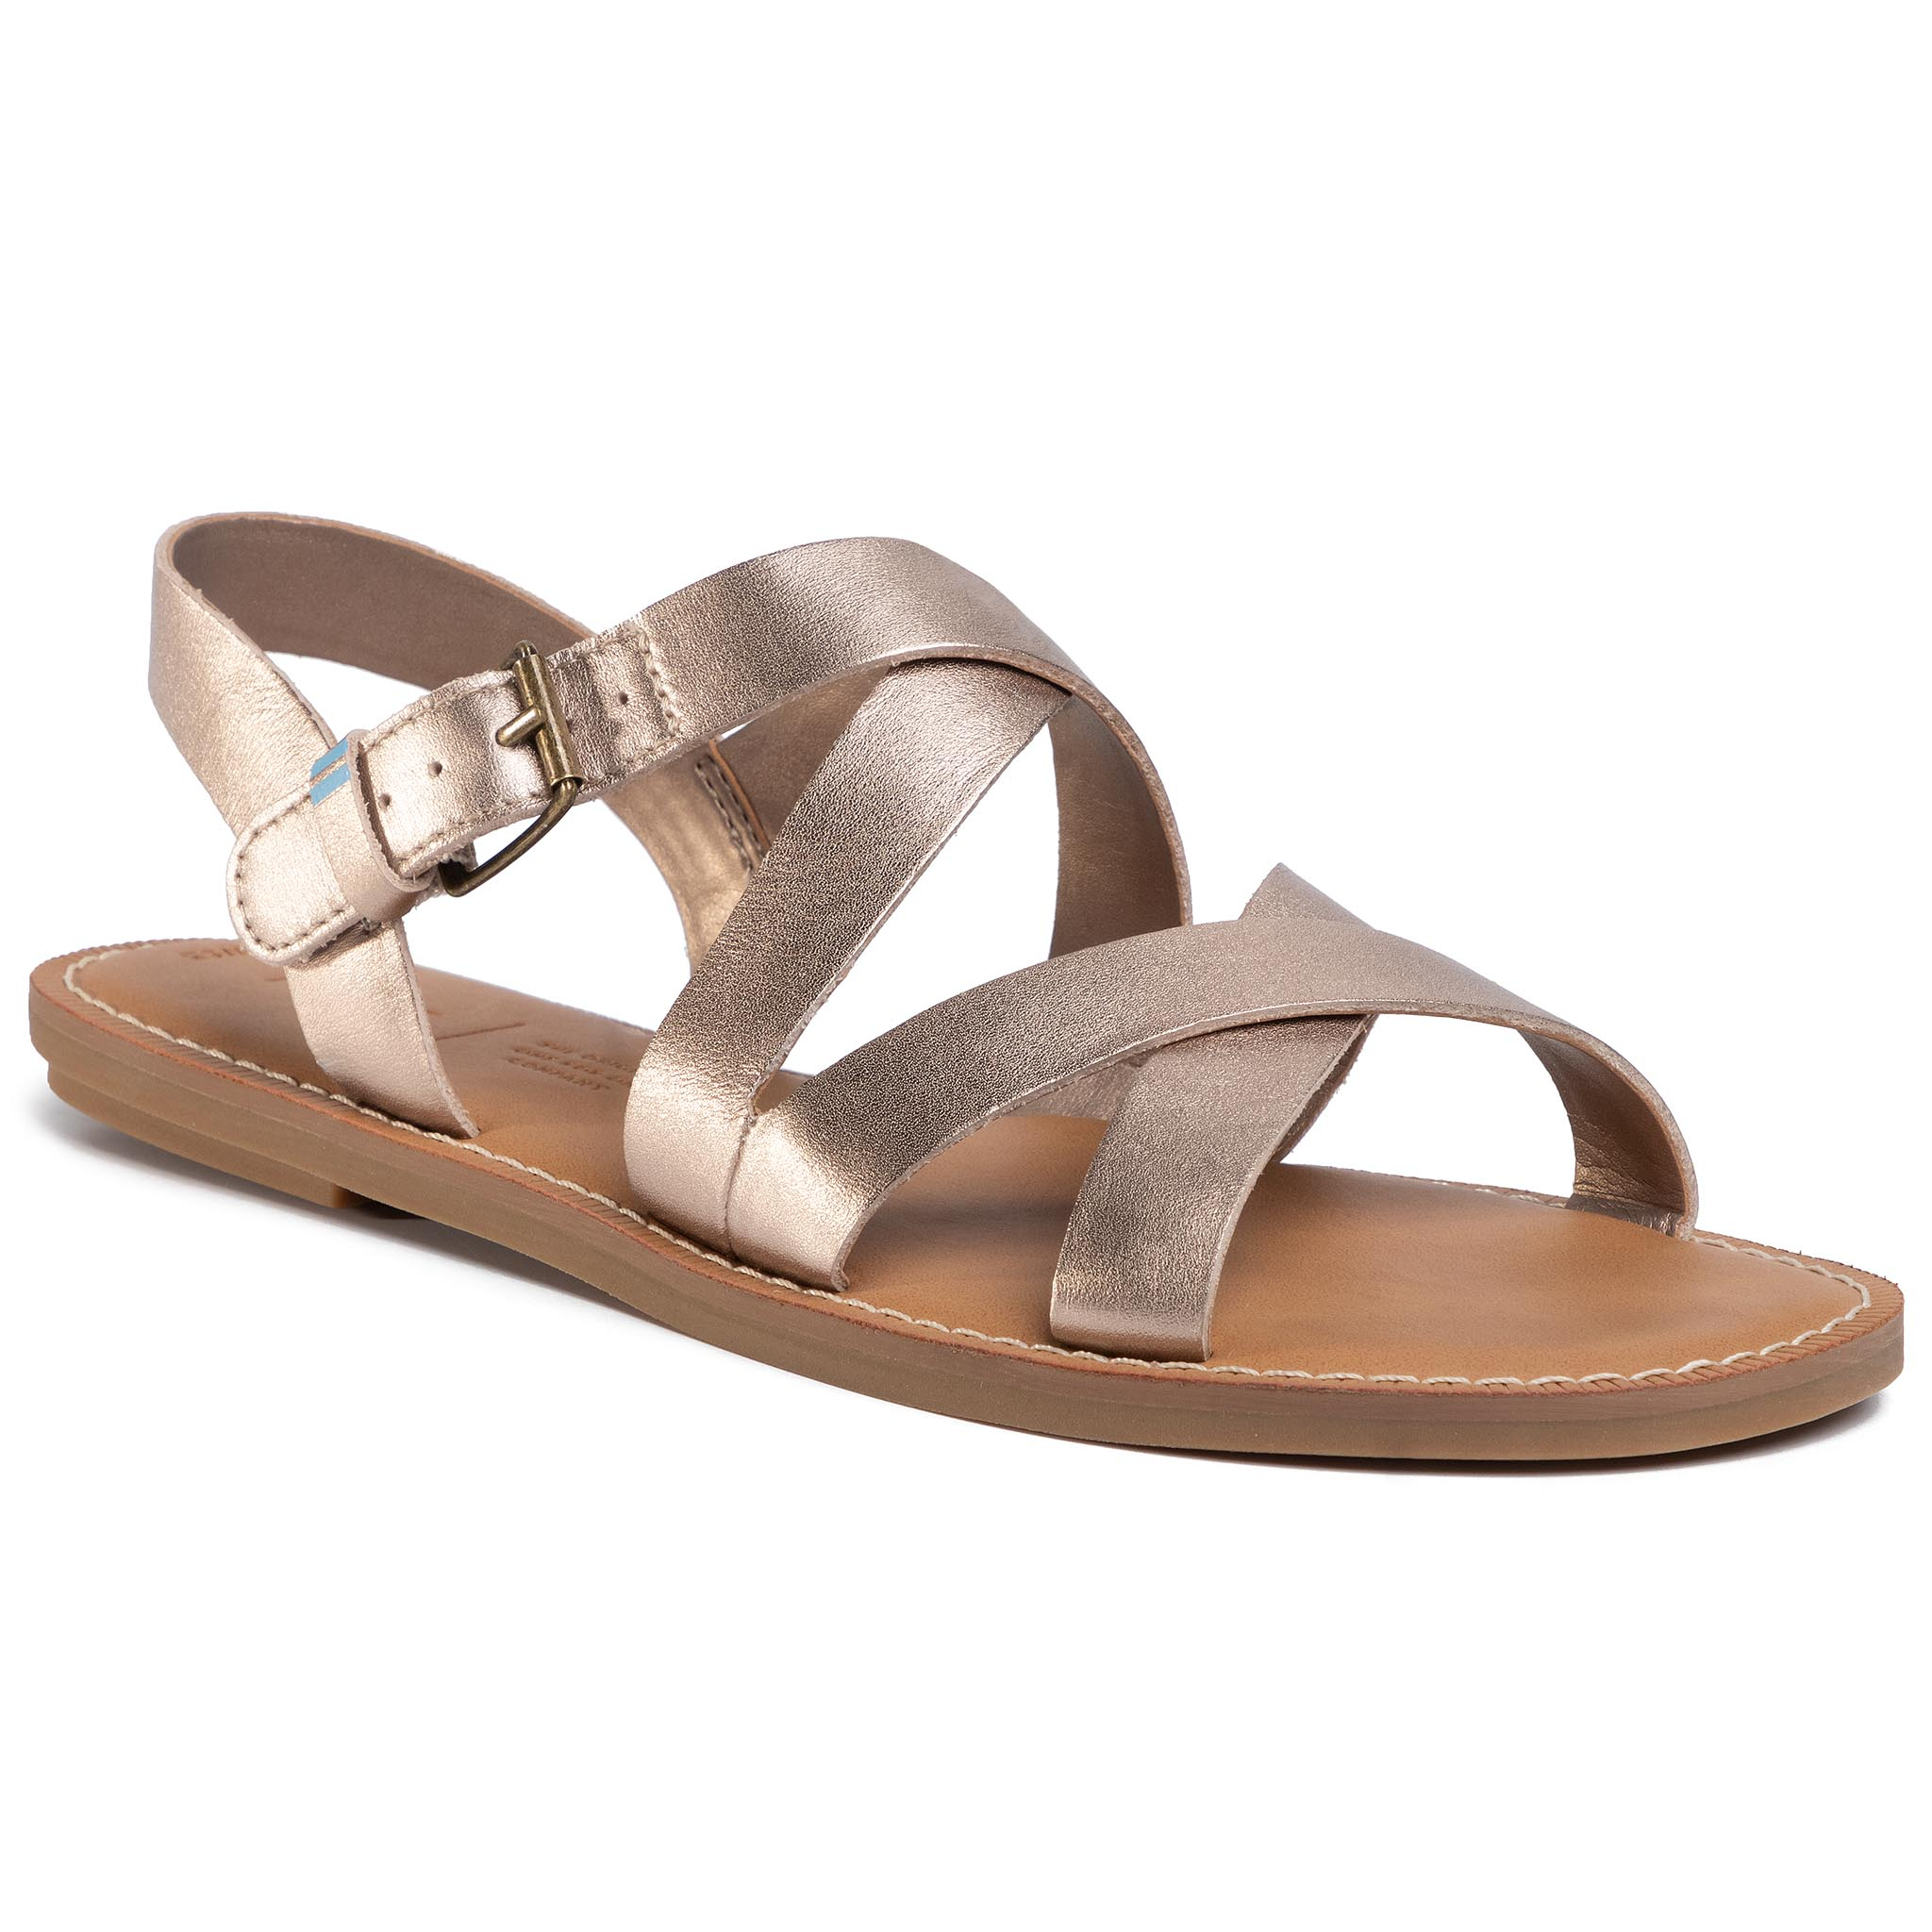 Sandale TOMS - Sicily 10015120 Rose Gold Metallic Leather